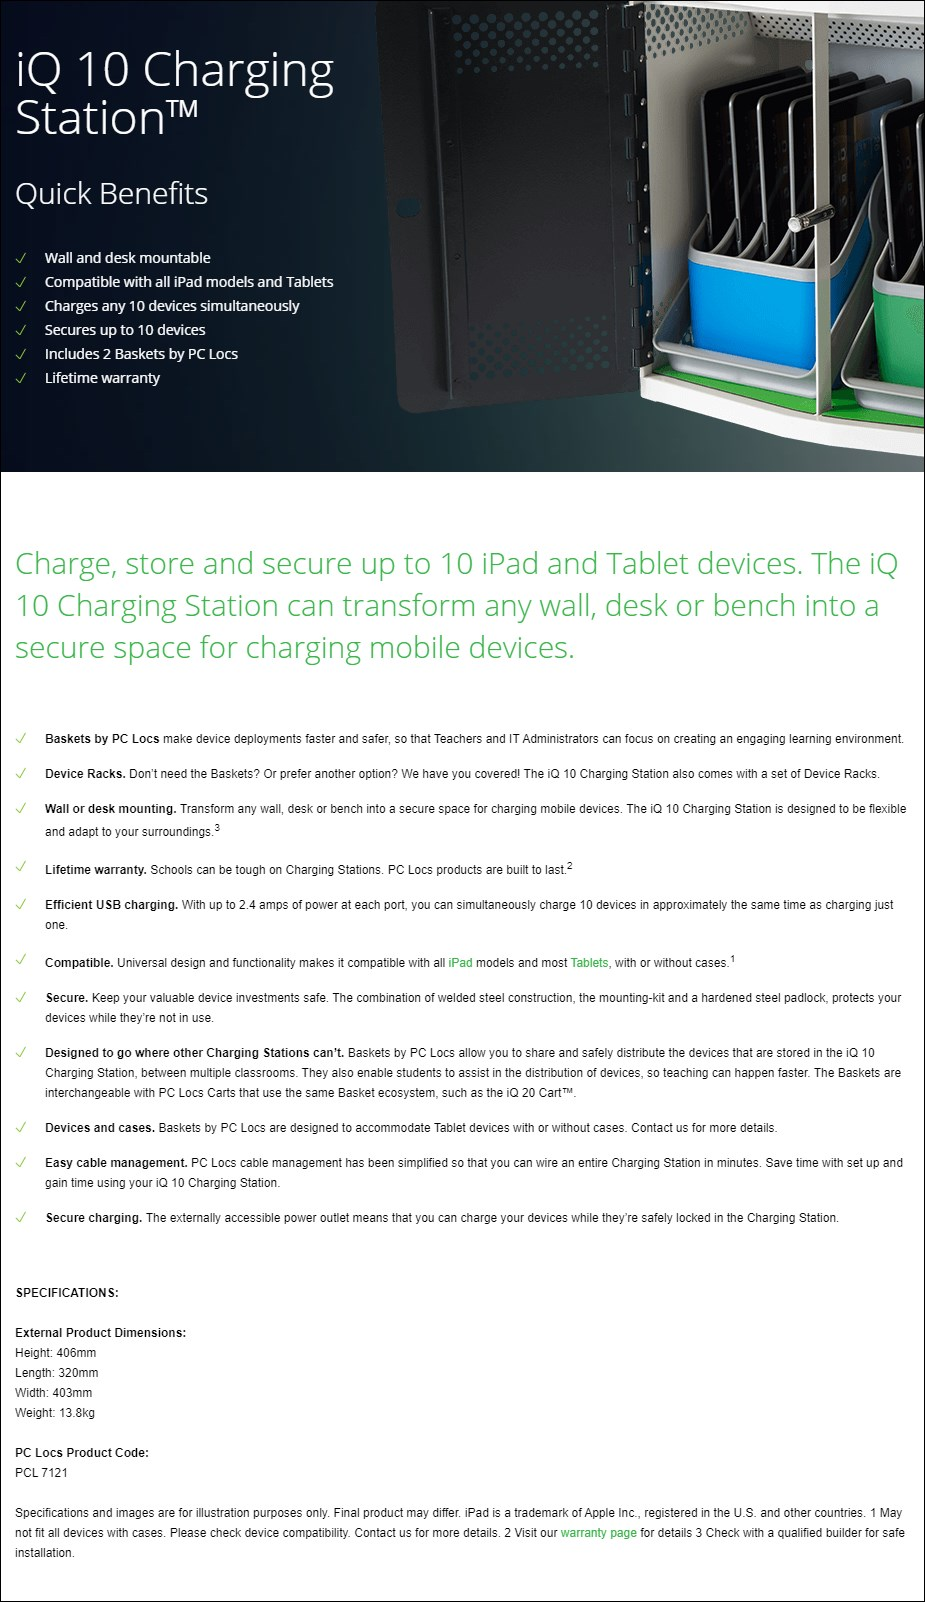 PC Locs iQ 10 Charging Station - Overview 1